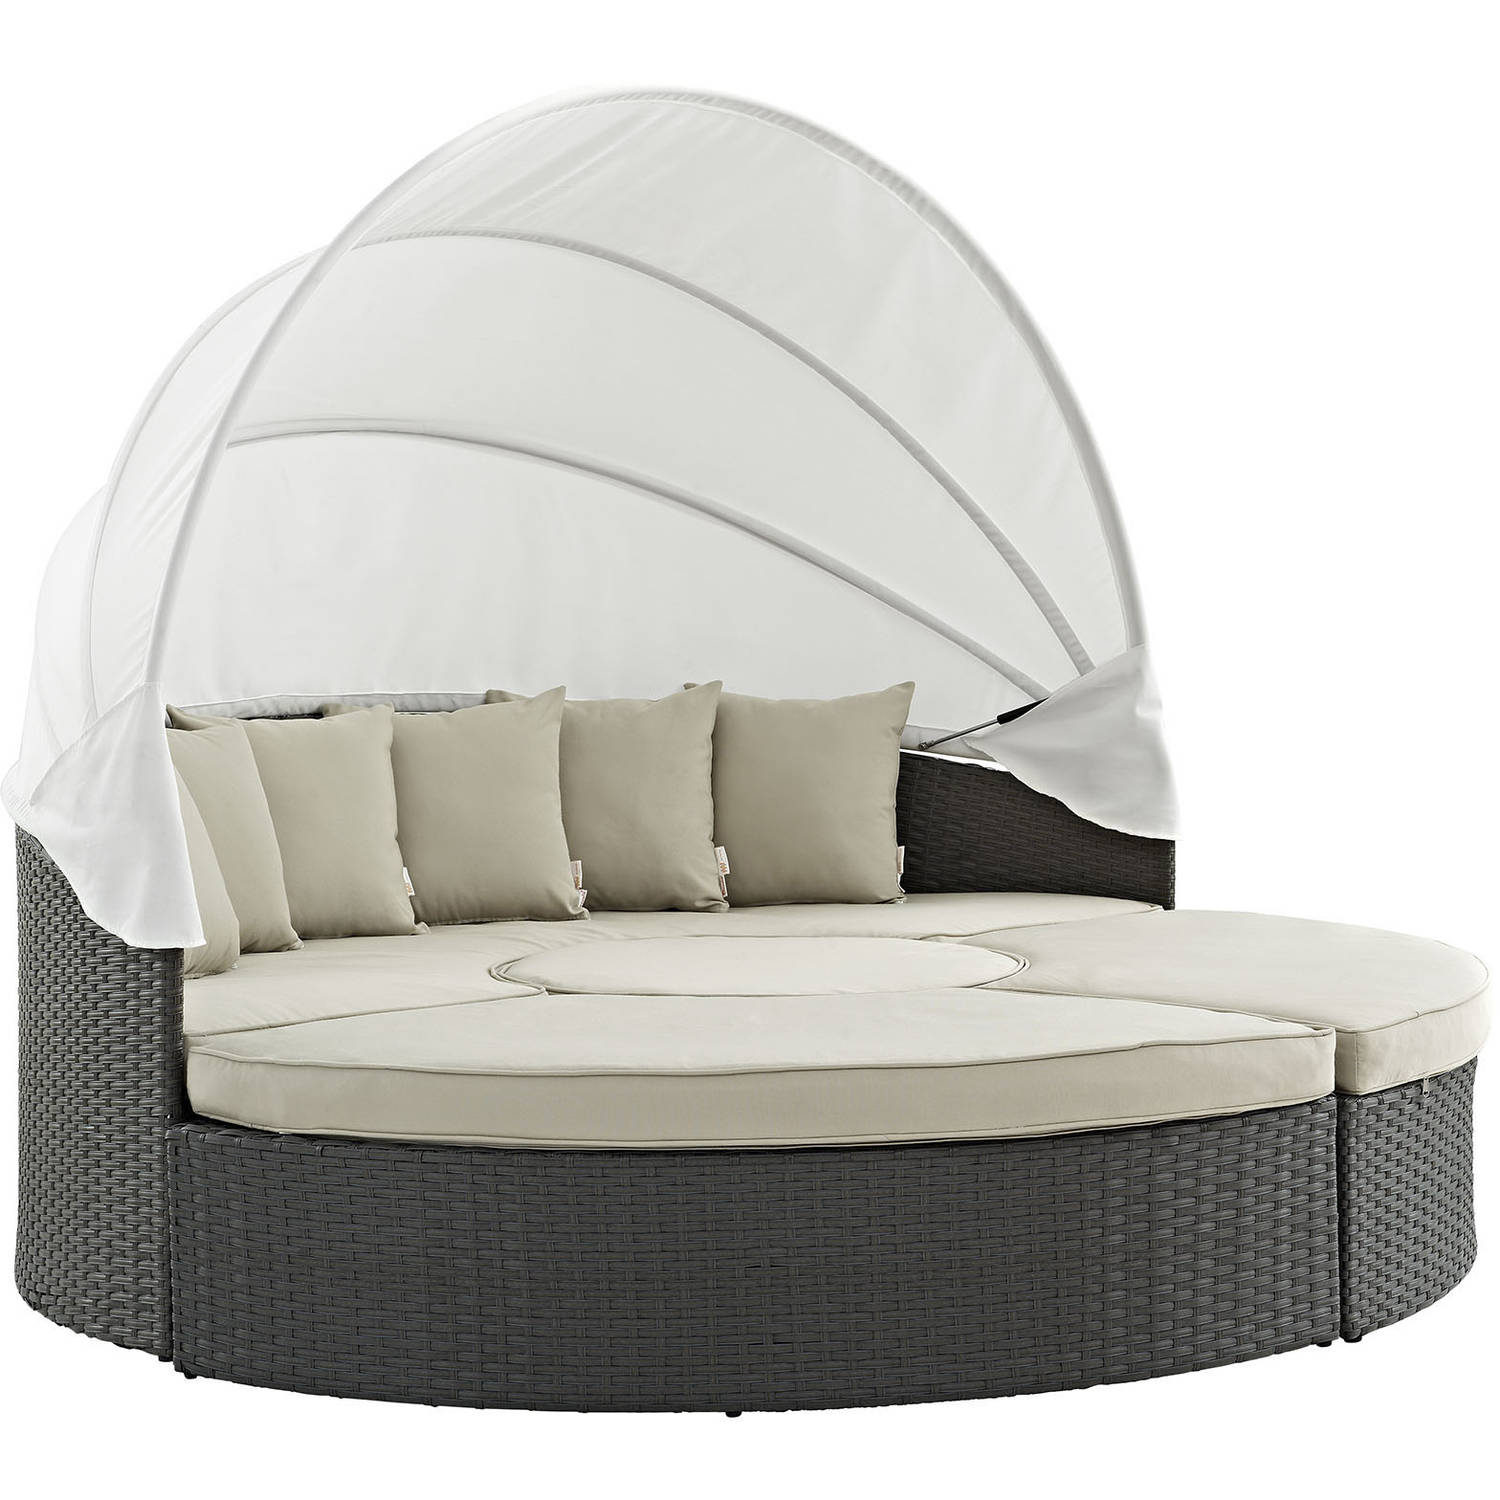 Modway Sojourn Outdoor Patio Sunbrella Canopy Daybed Multiple Colors  sc 1 st  Walmart : canopy day bed - memphite.com